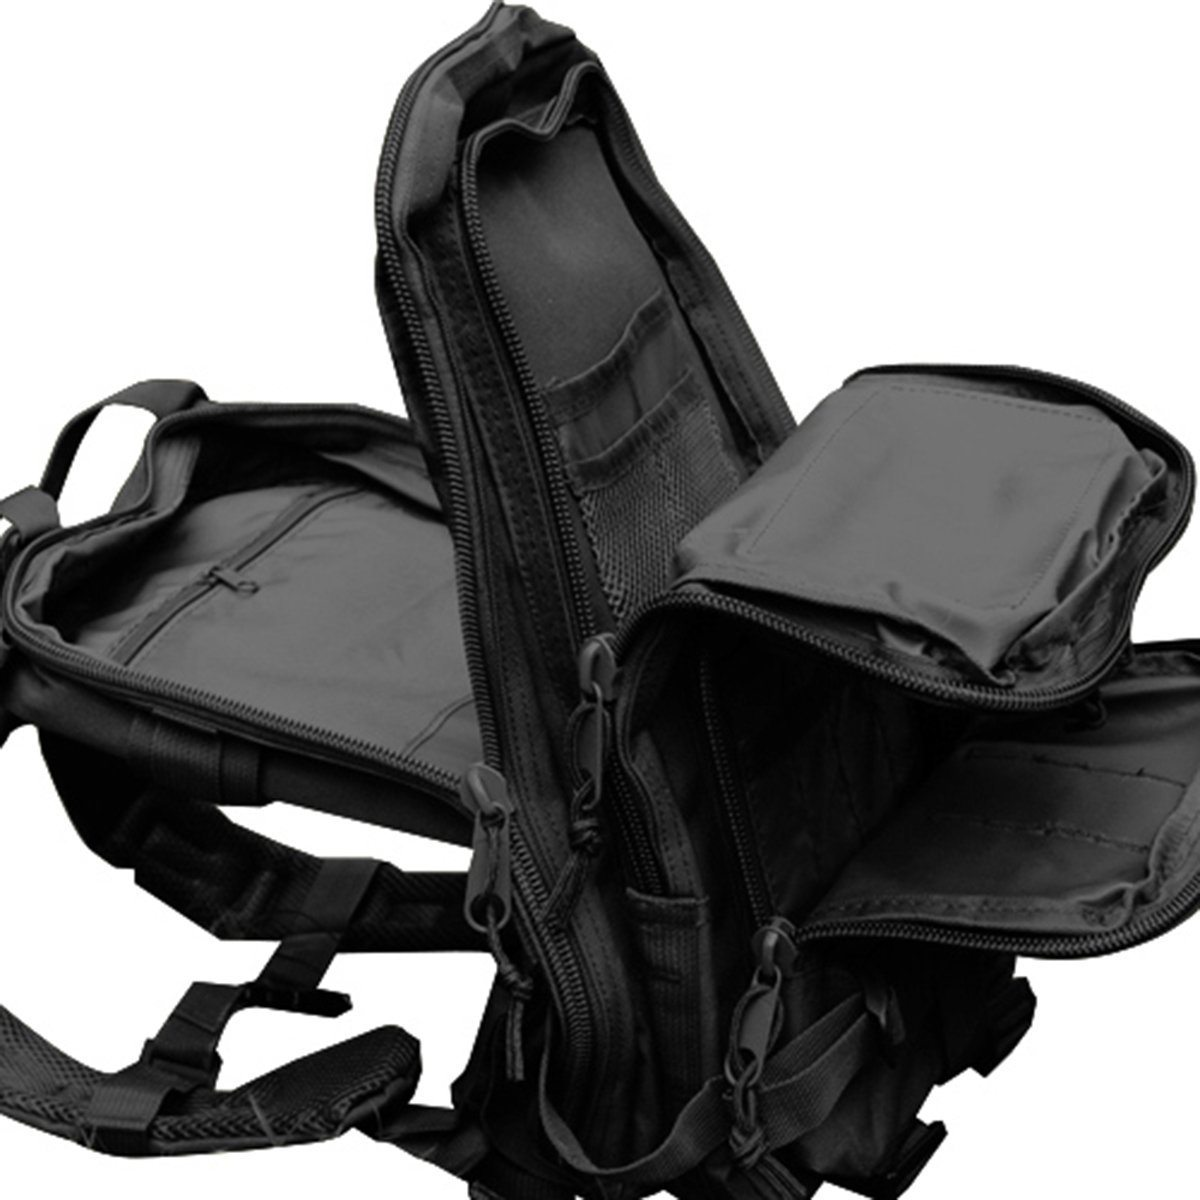 This 30L capacity tactical backpack has plenty of internal compartments for your bug-out gear